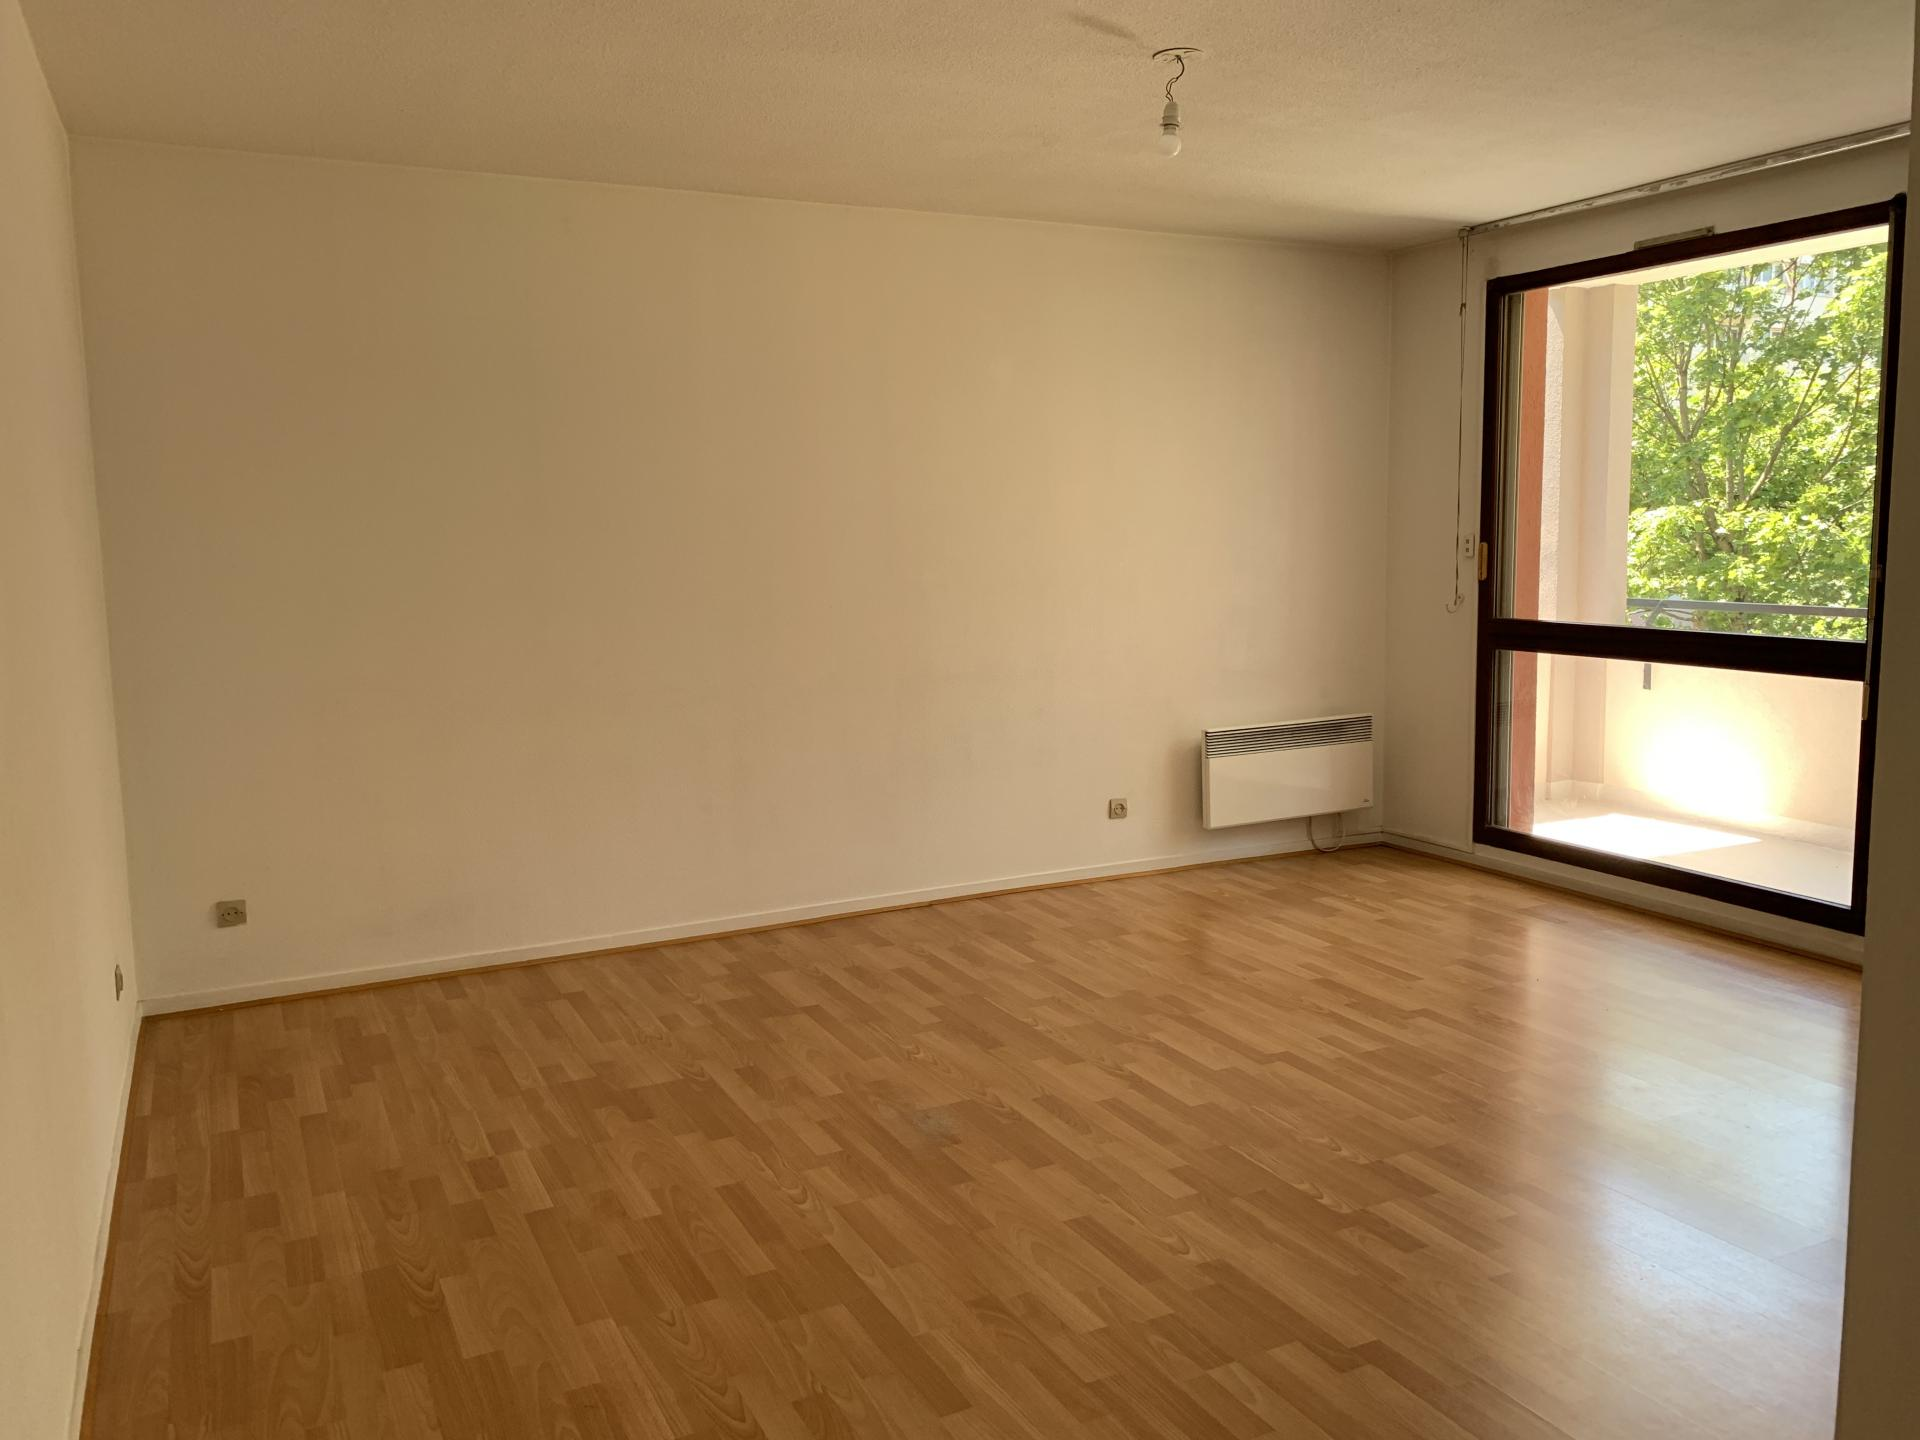 Grenoble Appartement T3 - Résidence grand standing